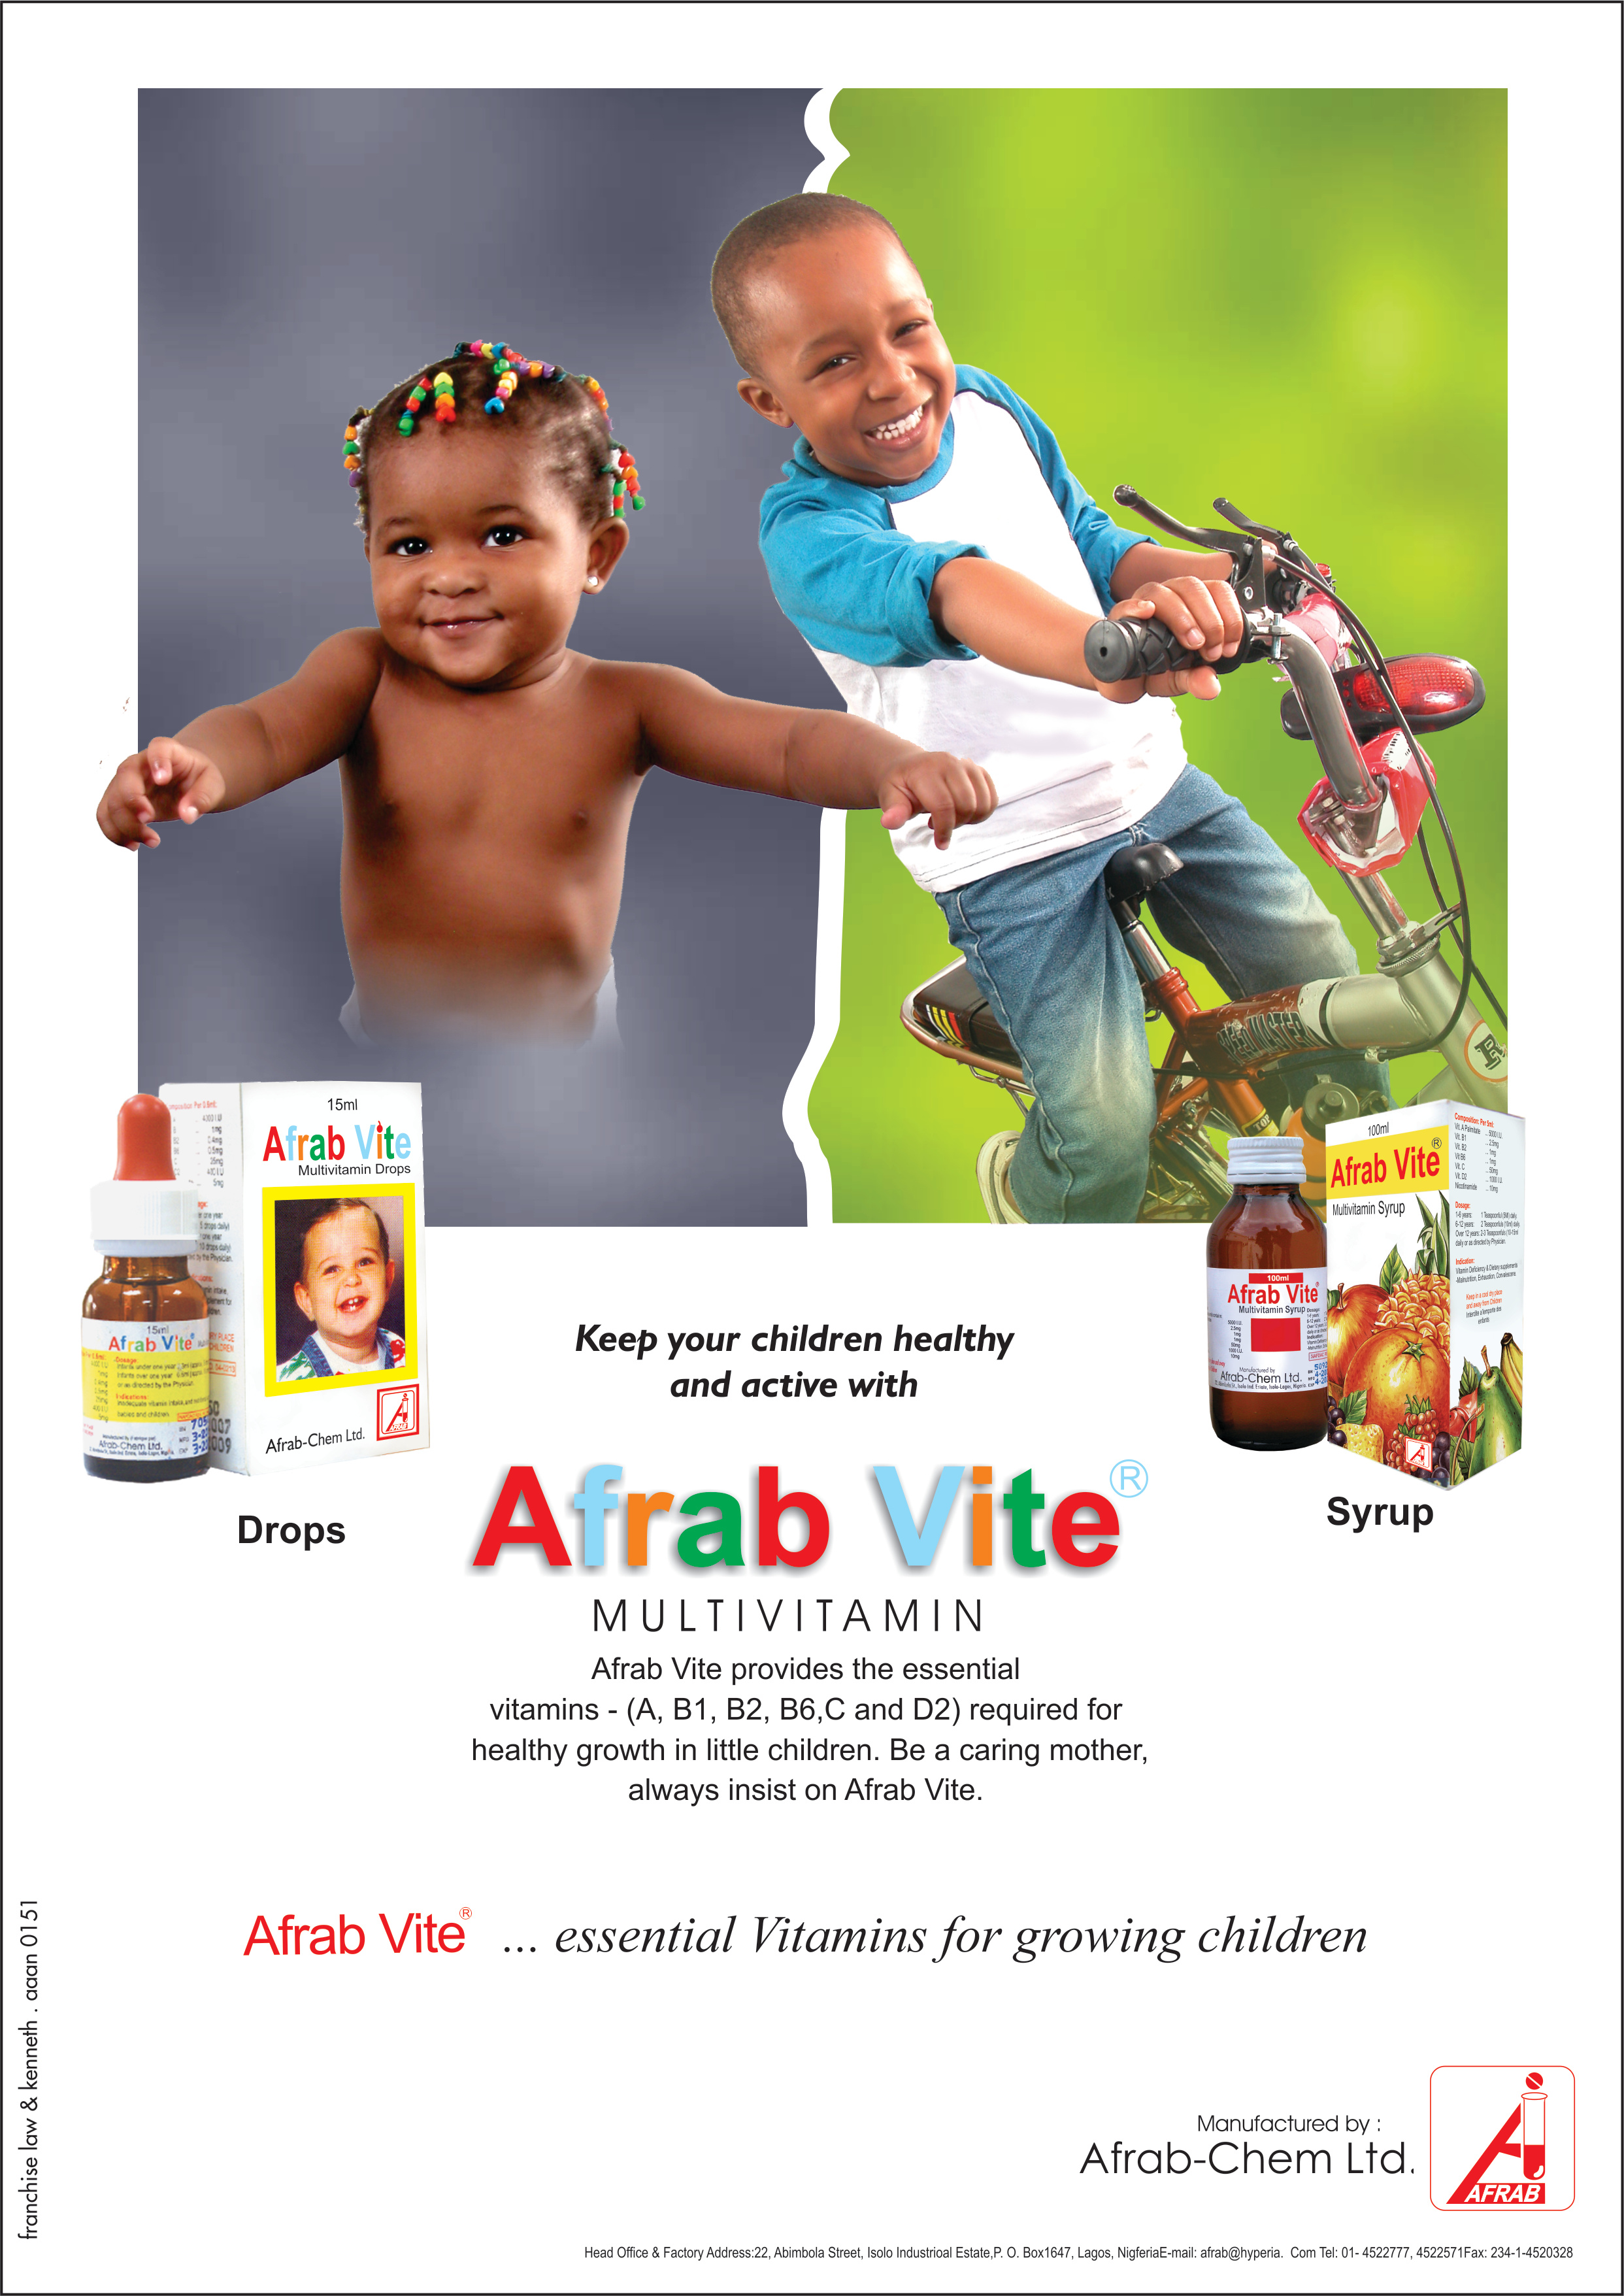 Afrabvite Multivitamin